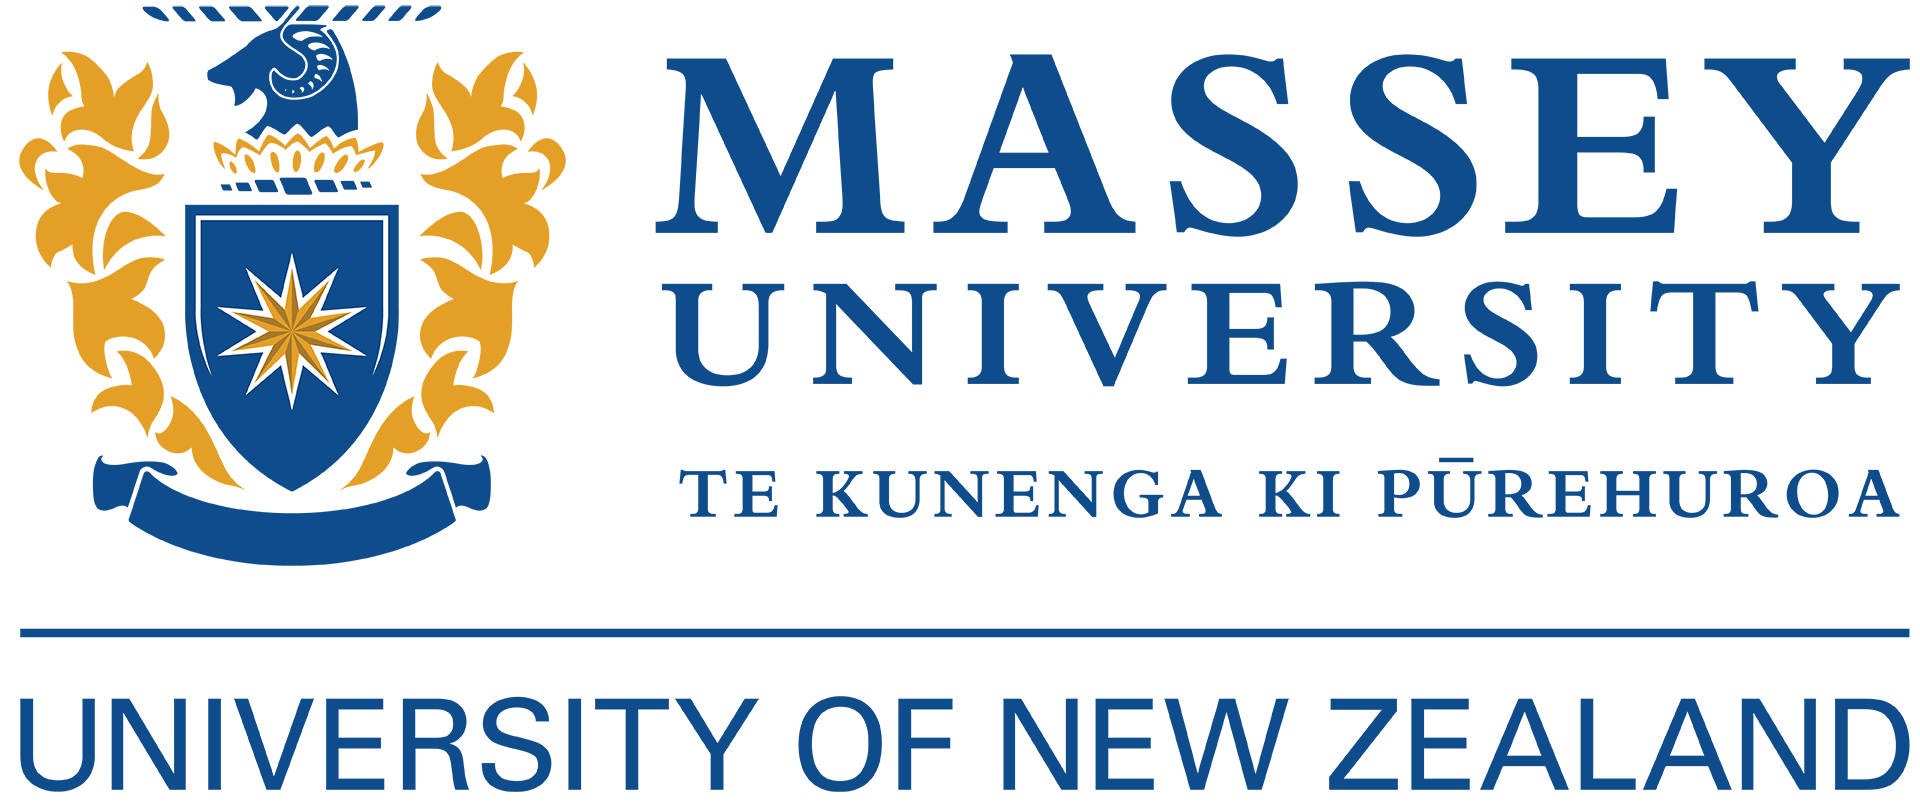 universities_massey-university-logo